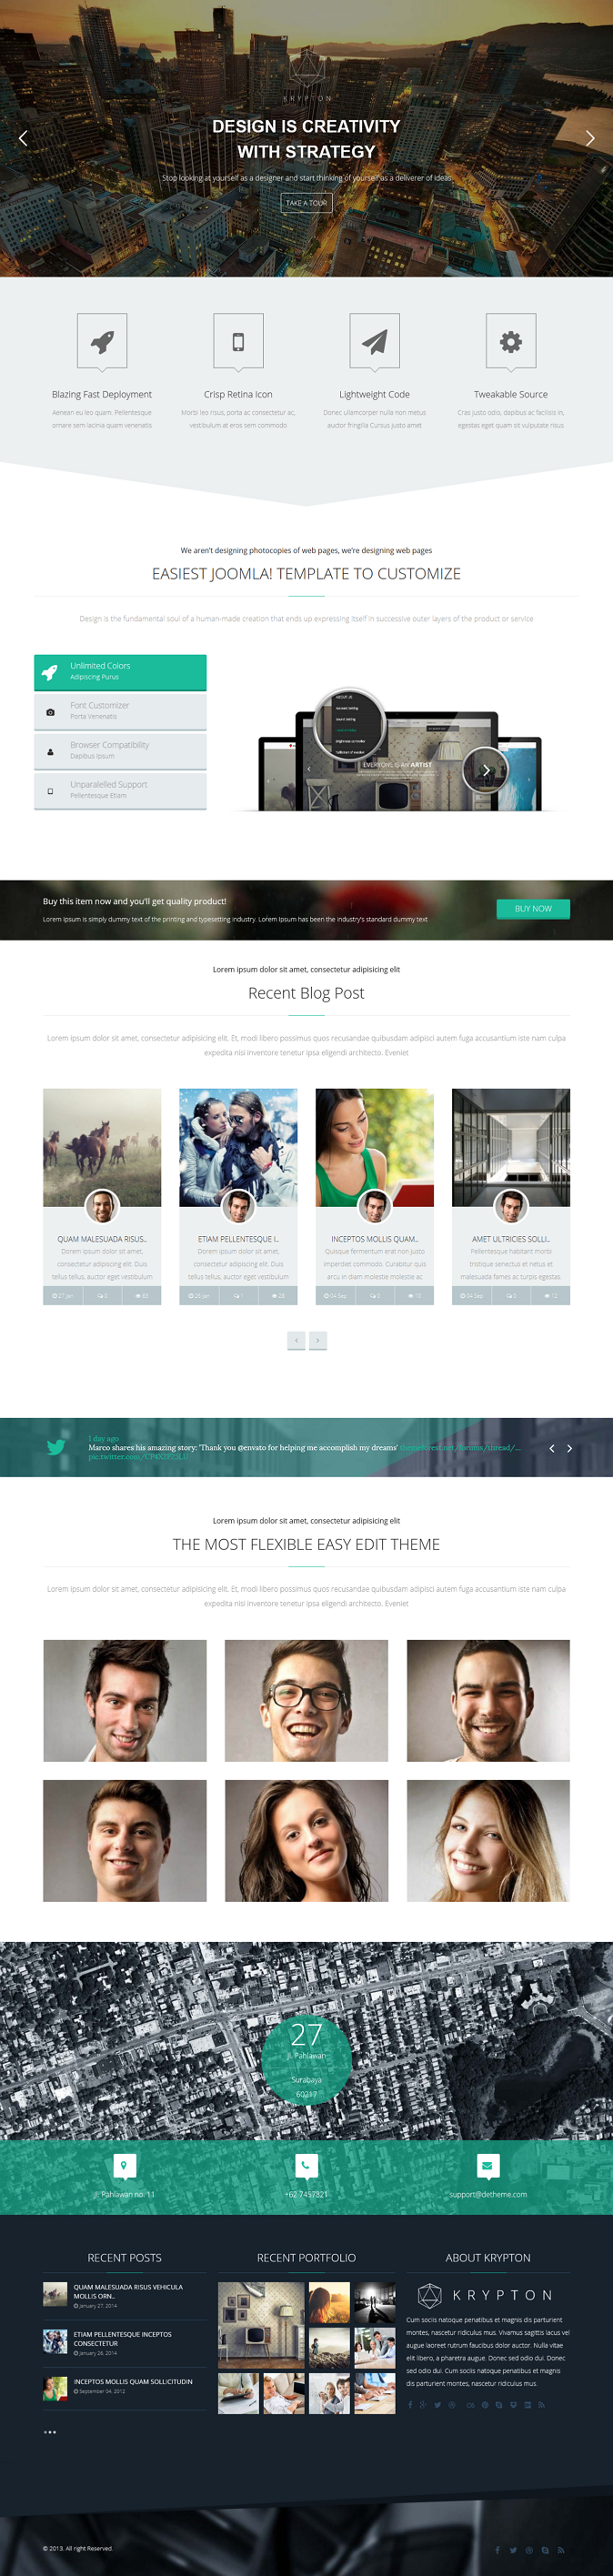 Krypton is a fully responsive Joomla Template suitable for any kind of creative or business use. ...